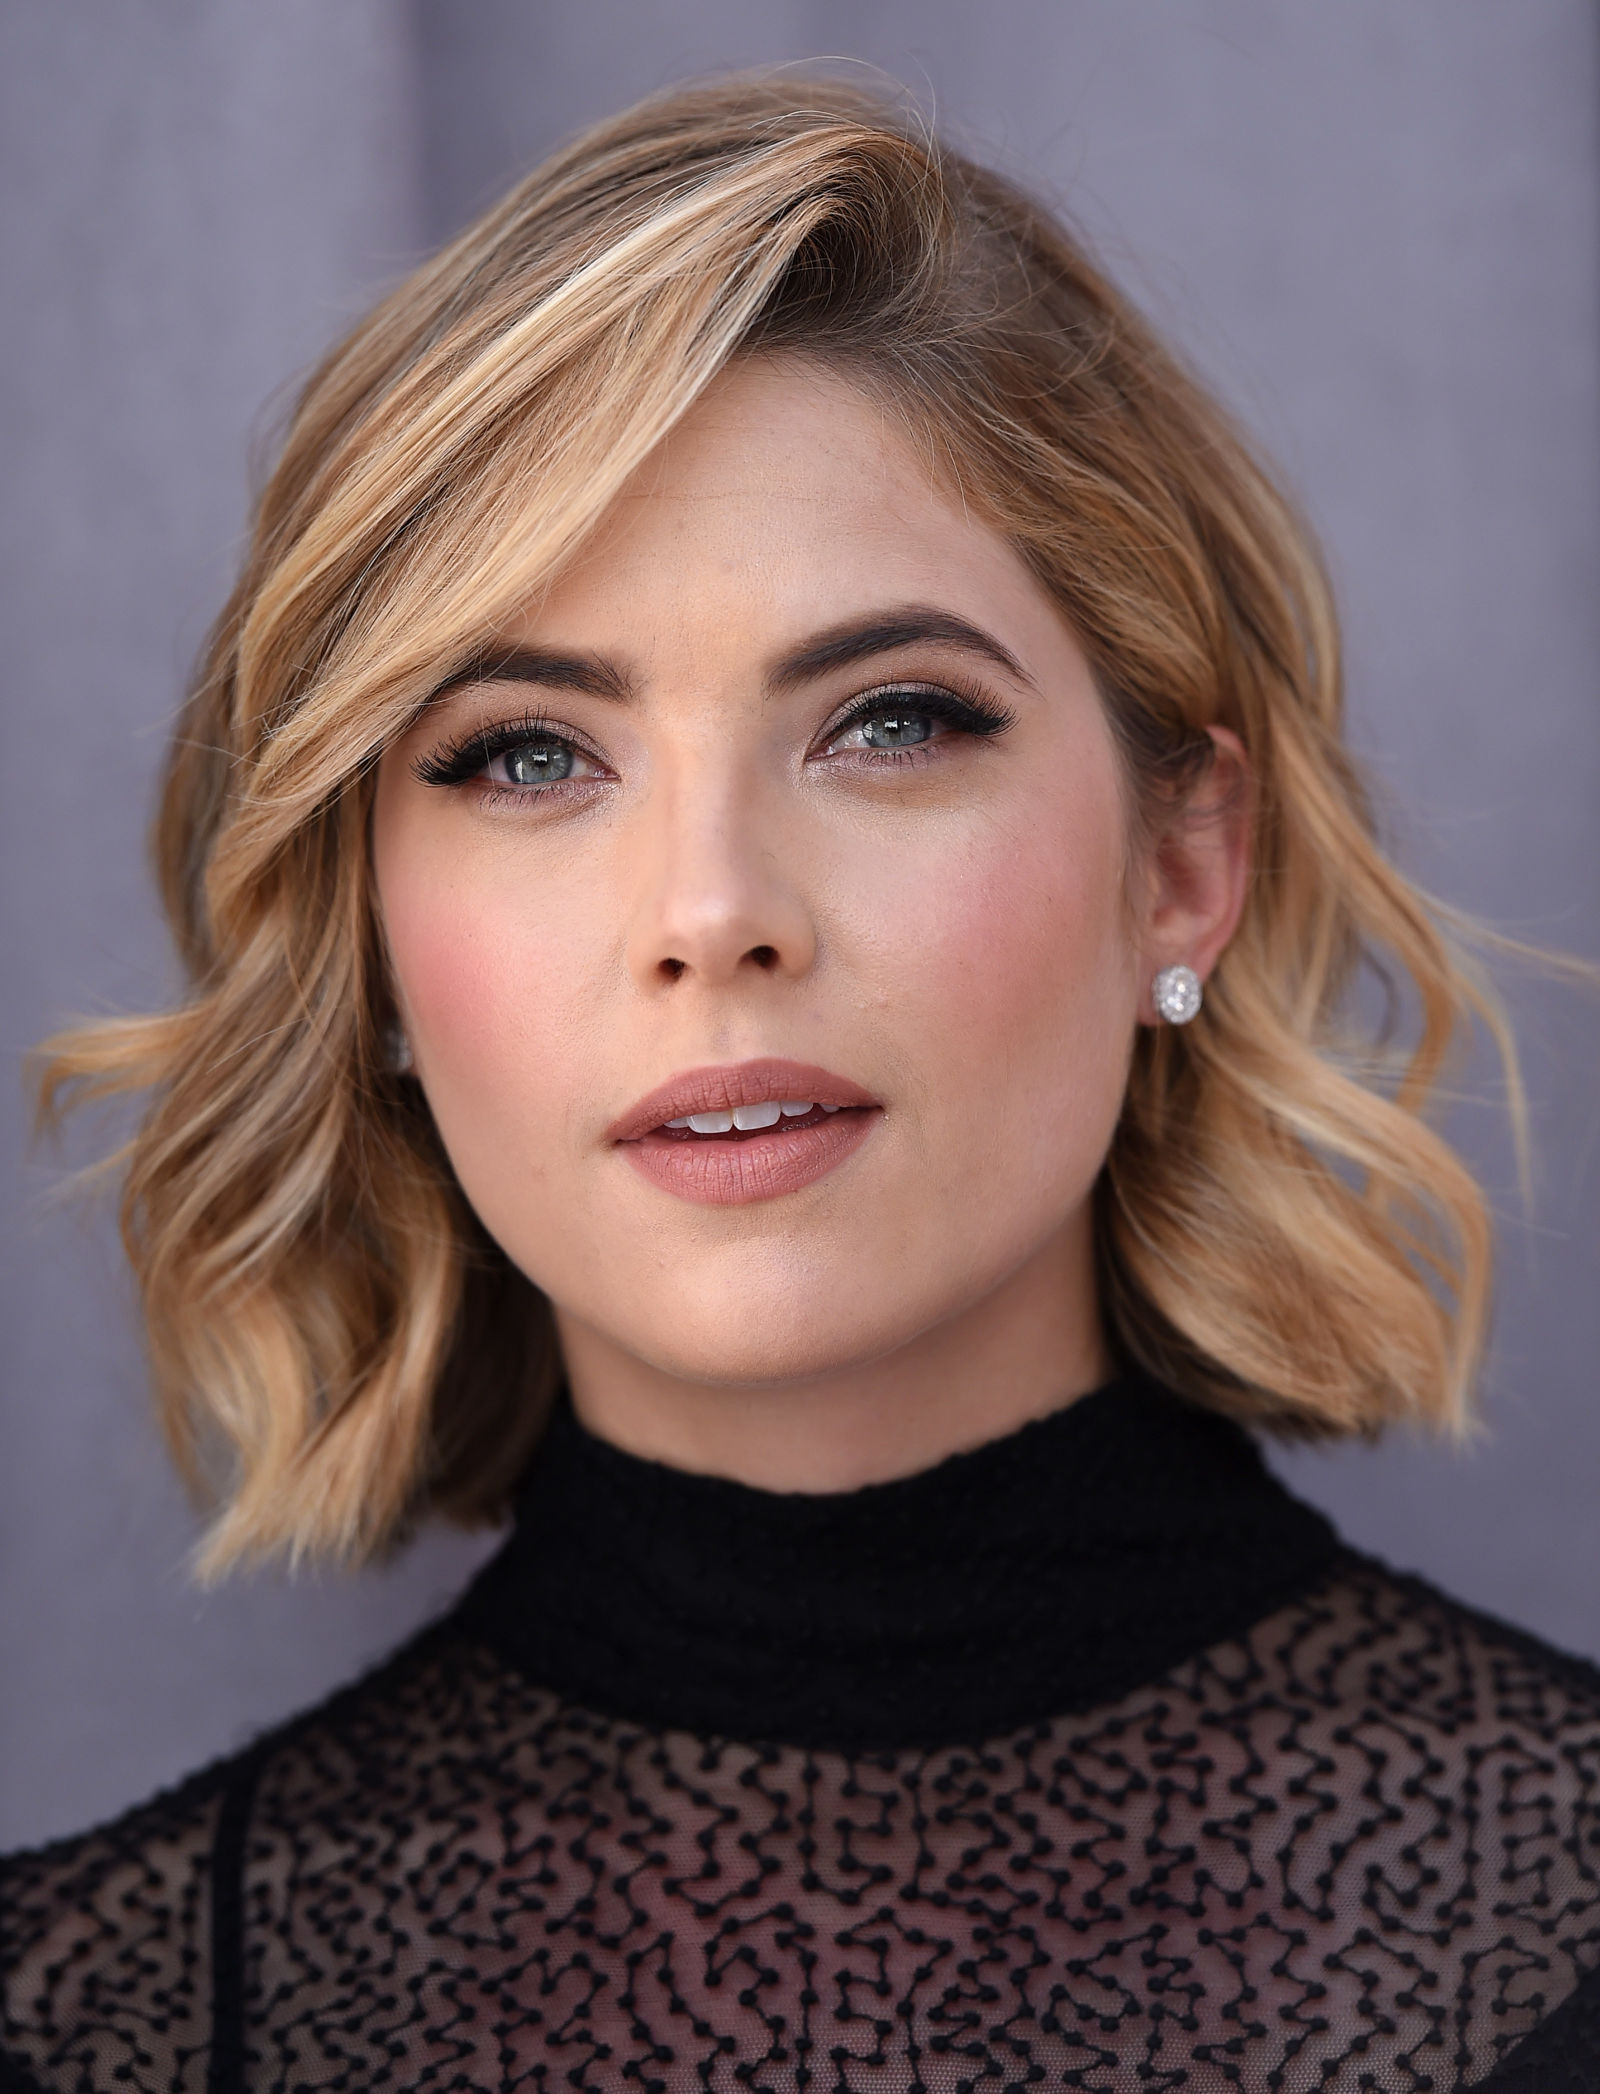 Hairstyles Female  25 Bob Hairstyles For Women – HAIRSTYLES